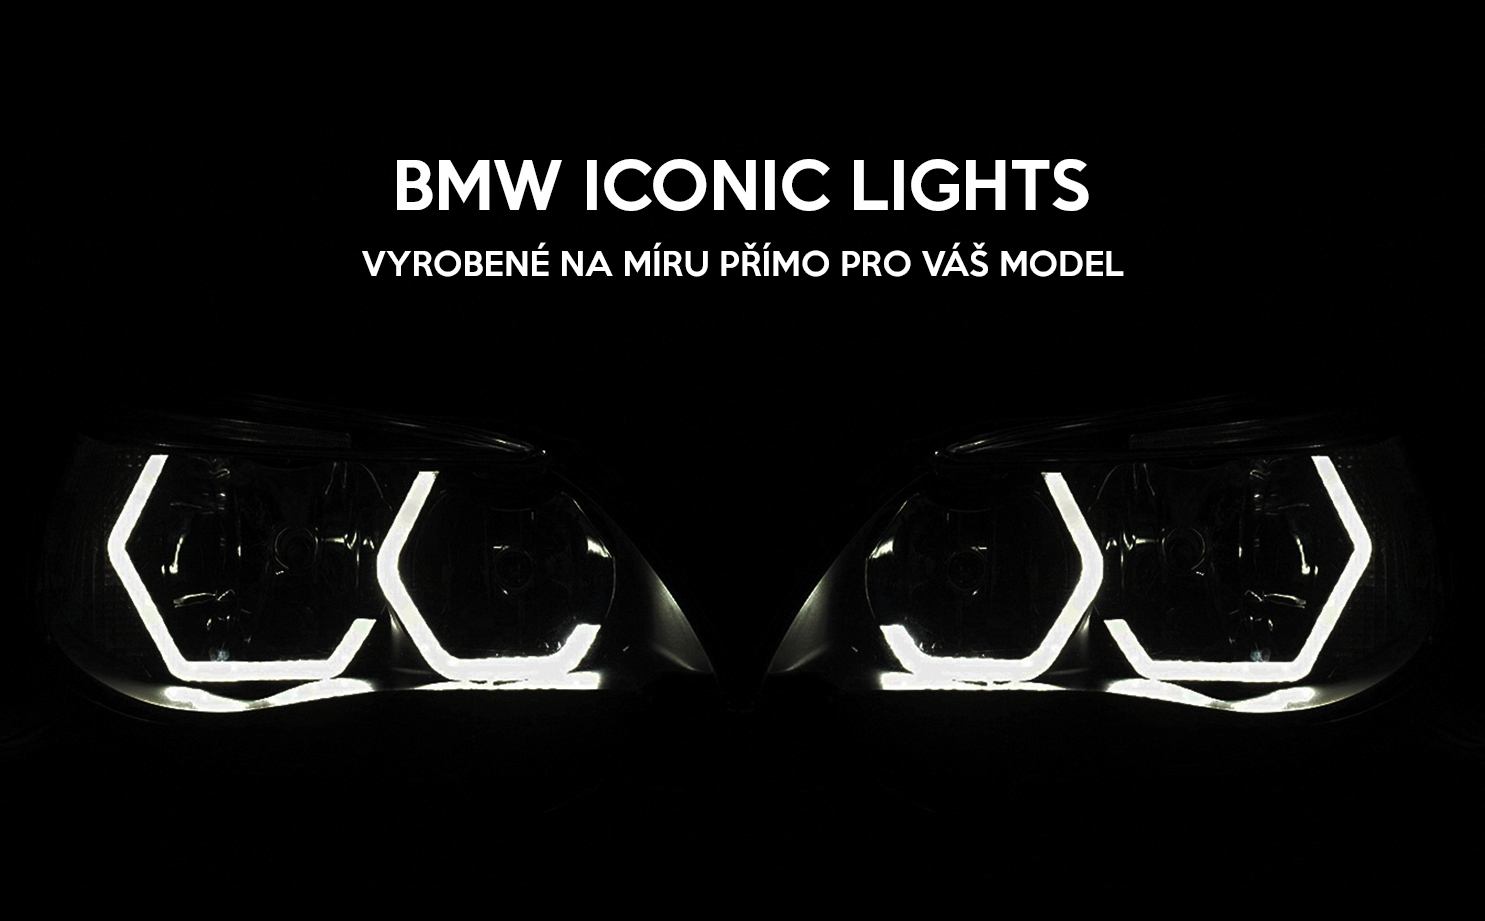 BMW iconic light